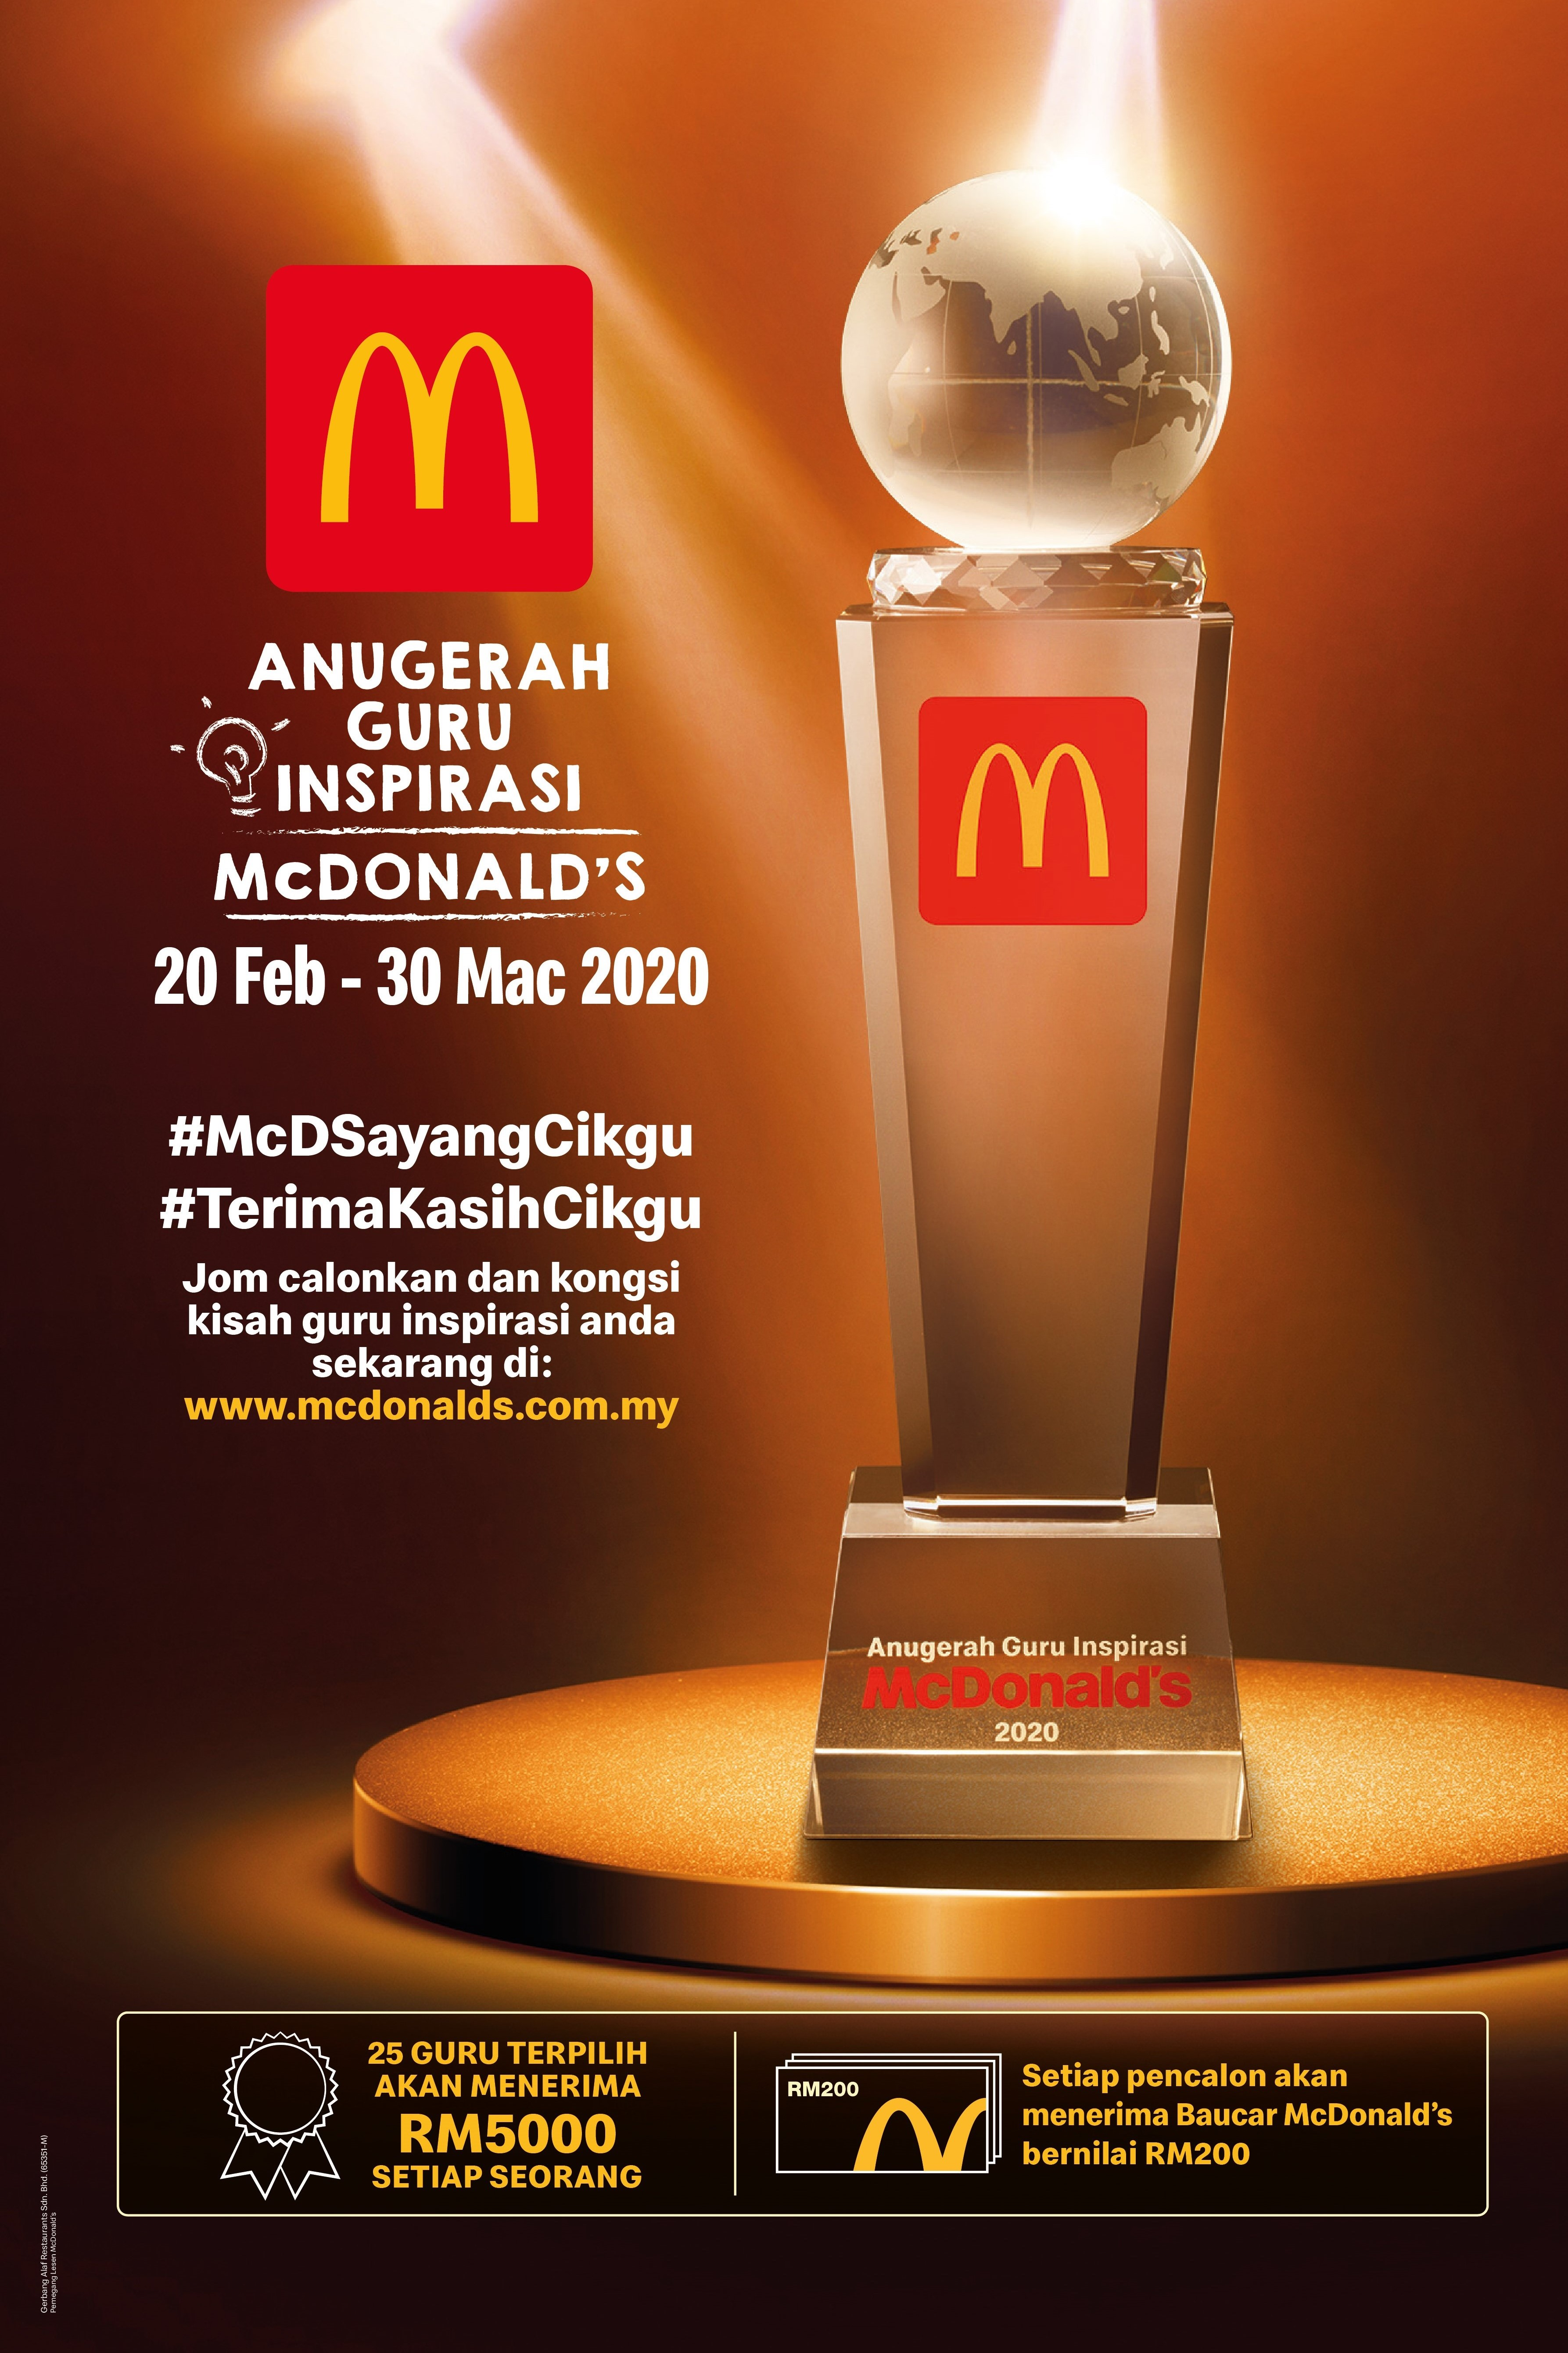 Image from McDonald's